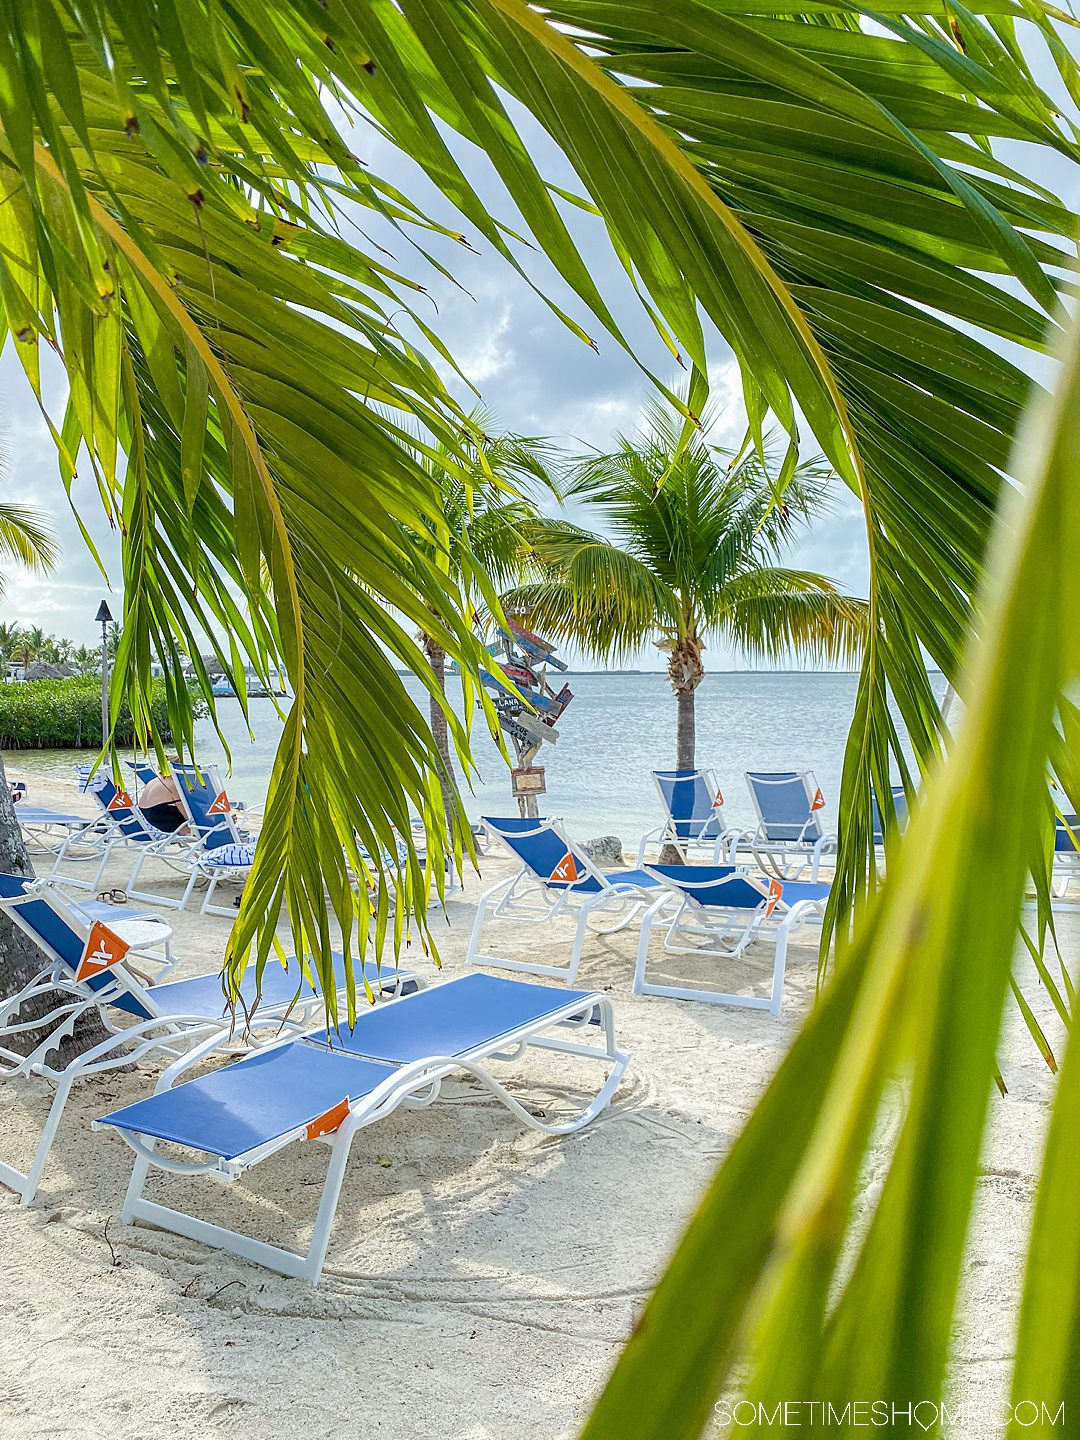 Blue lounge chairs on the beach as seen through green palm tree fronds.